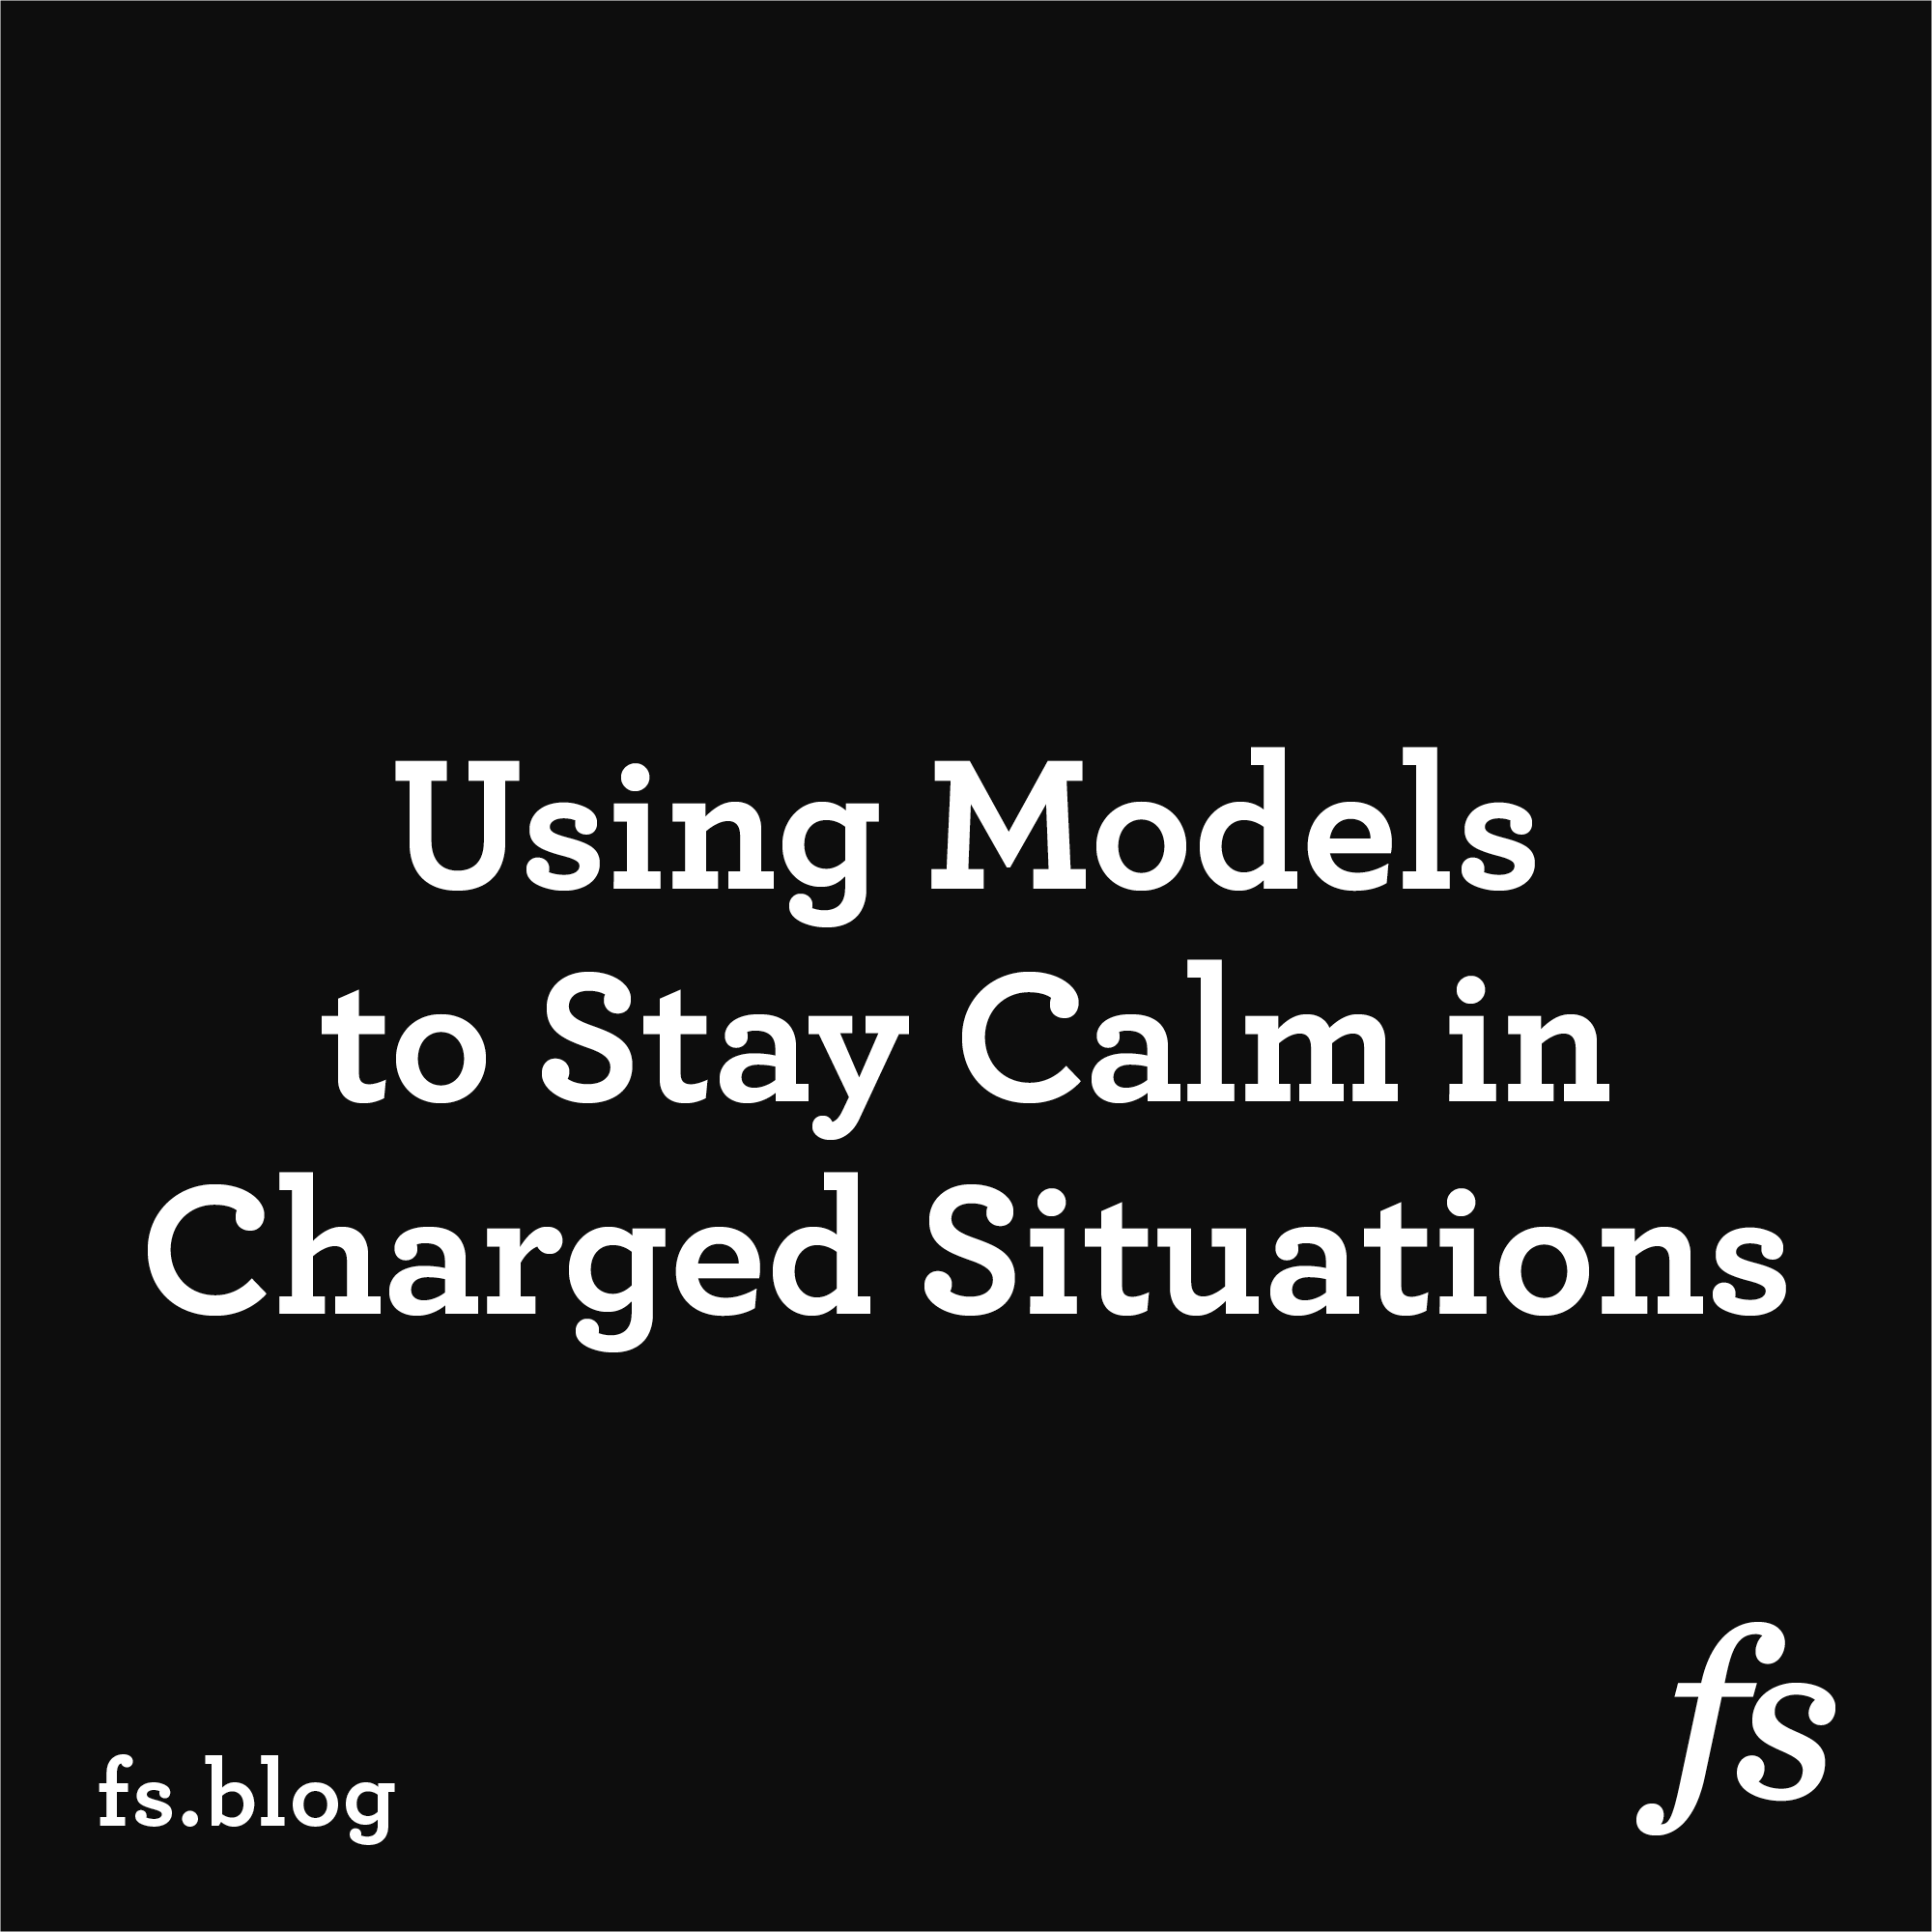 Using Models to Stay Calm in Charged Situations